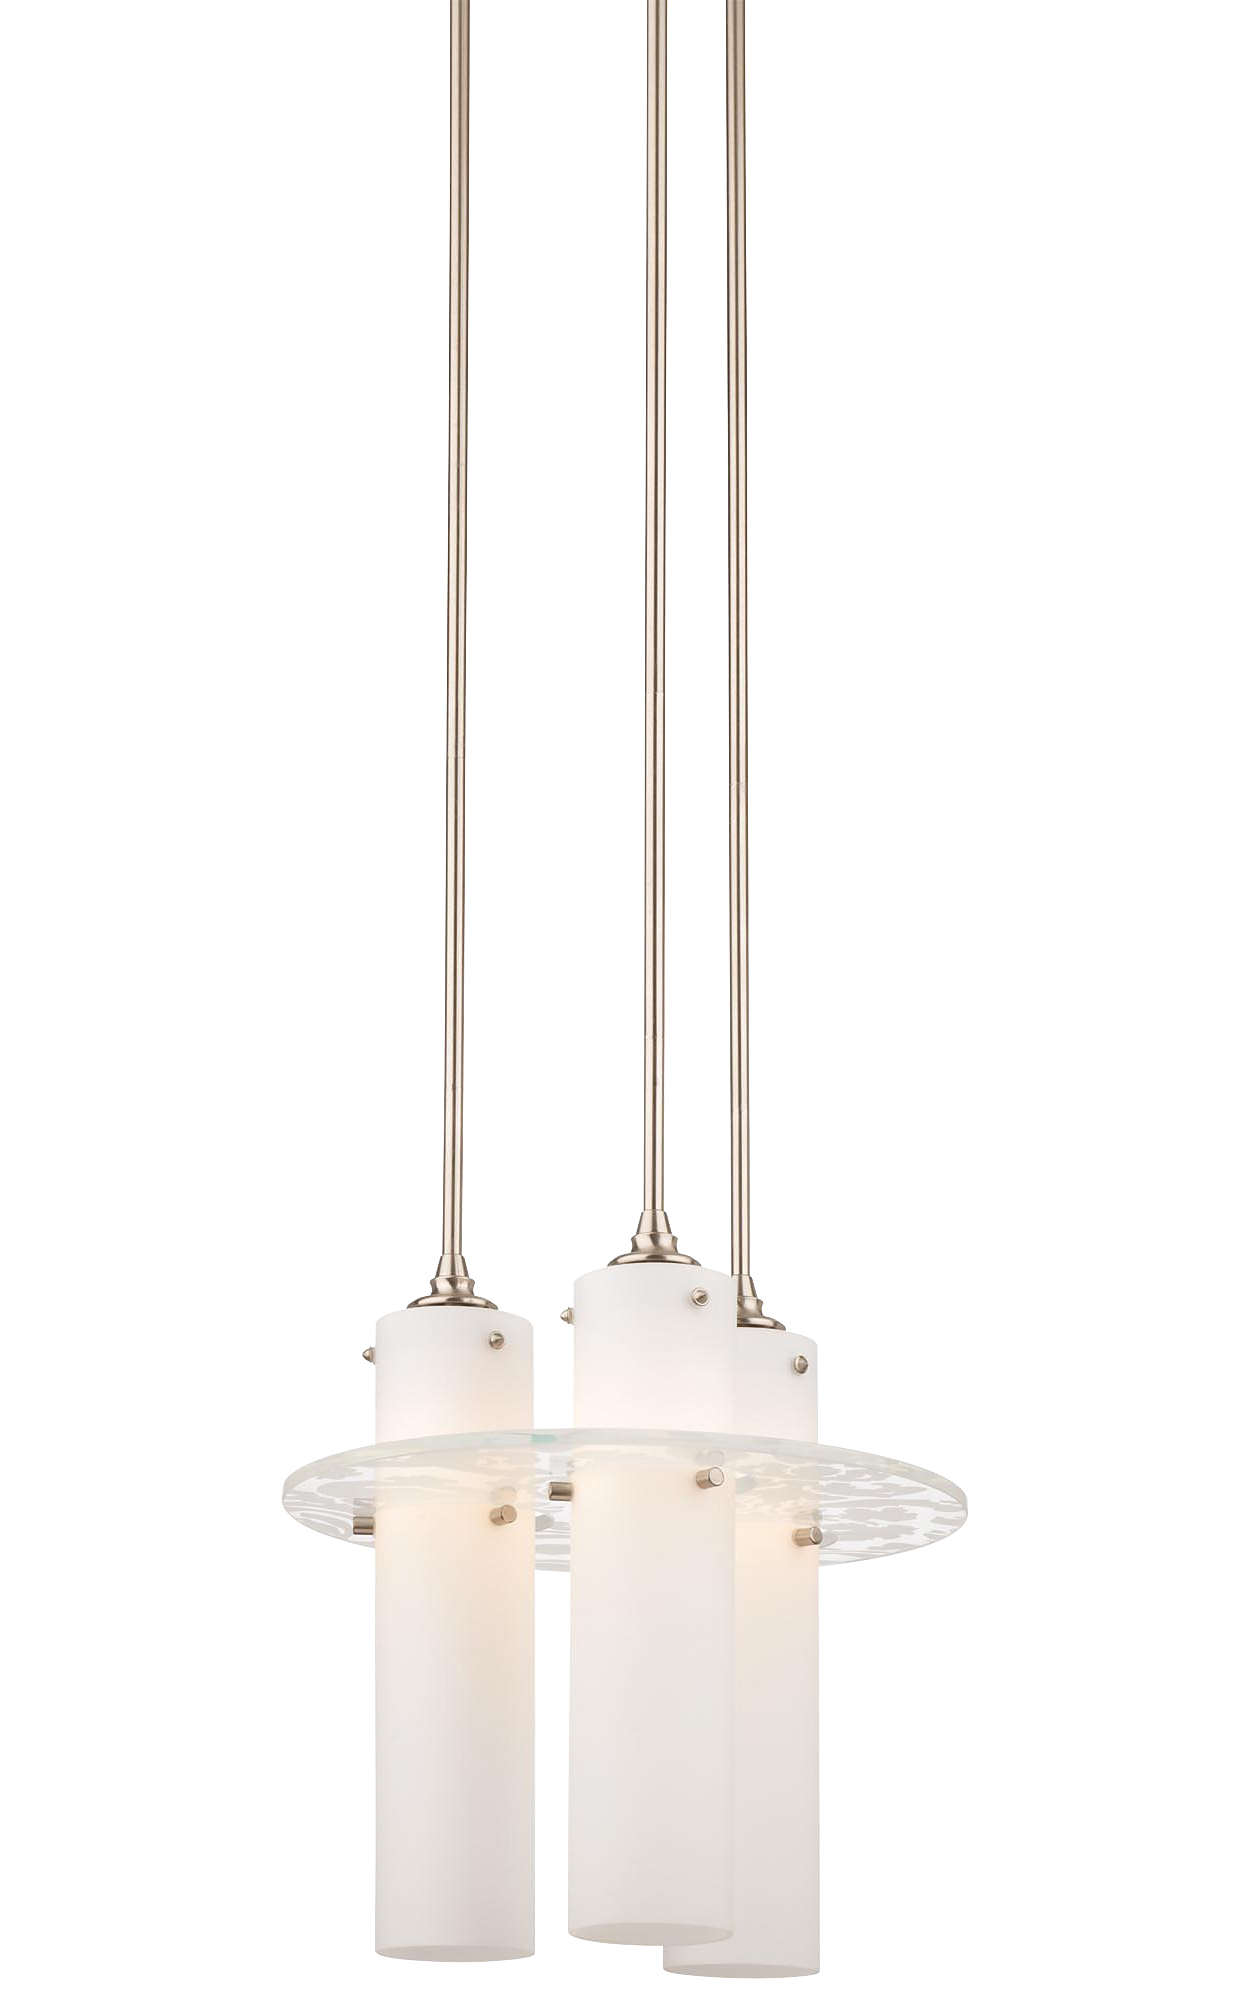 Dana 3-light Pendant in Satin Nickel finish